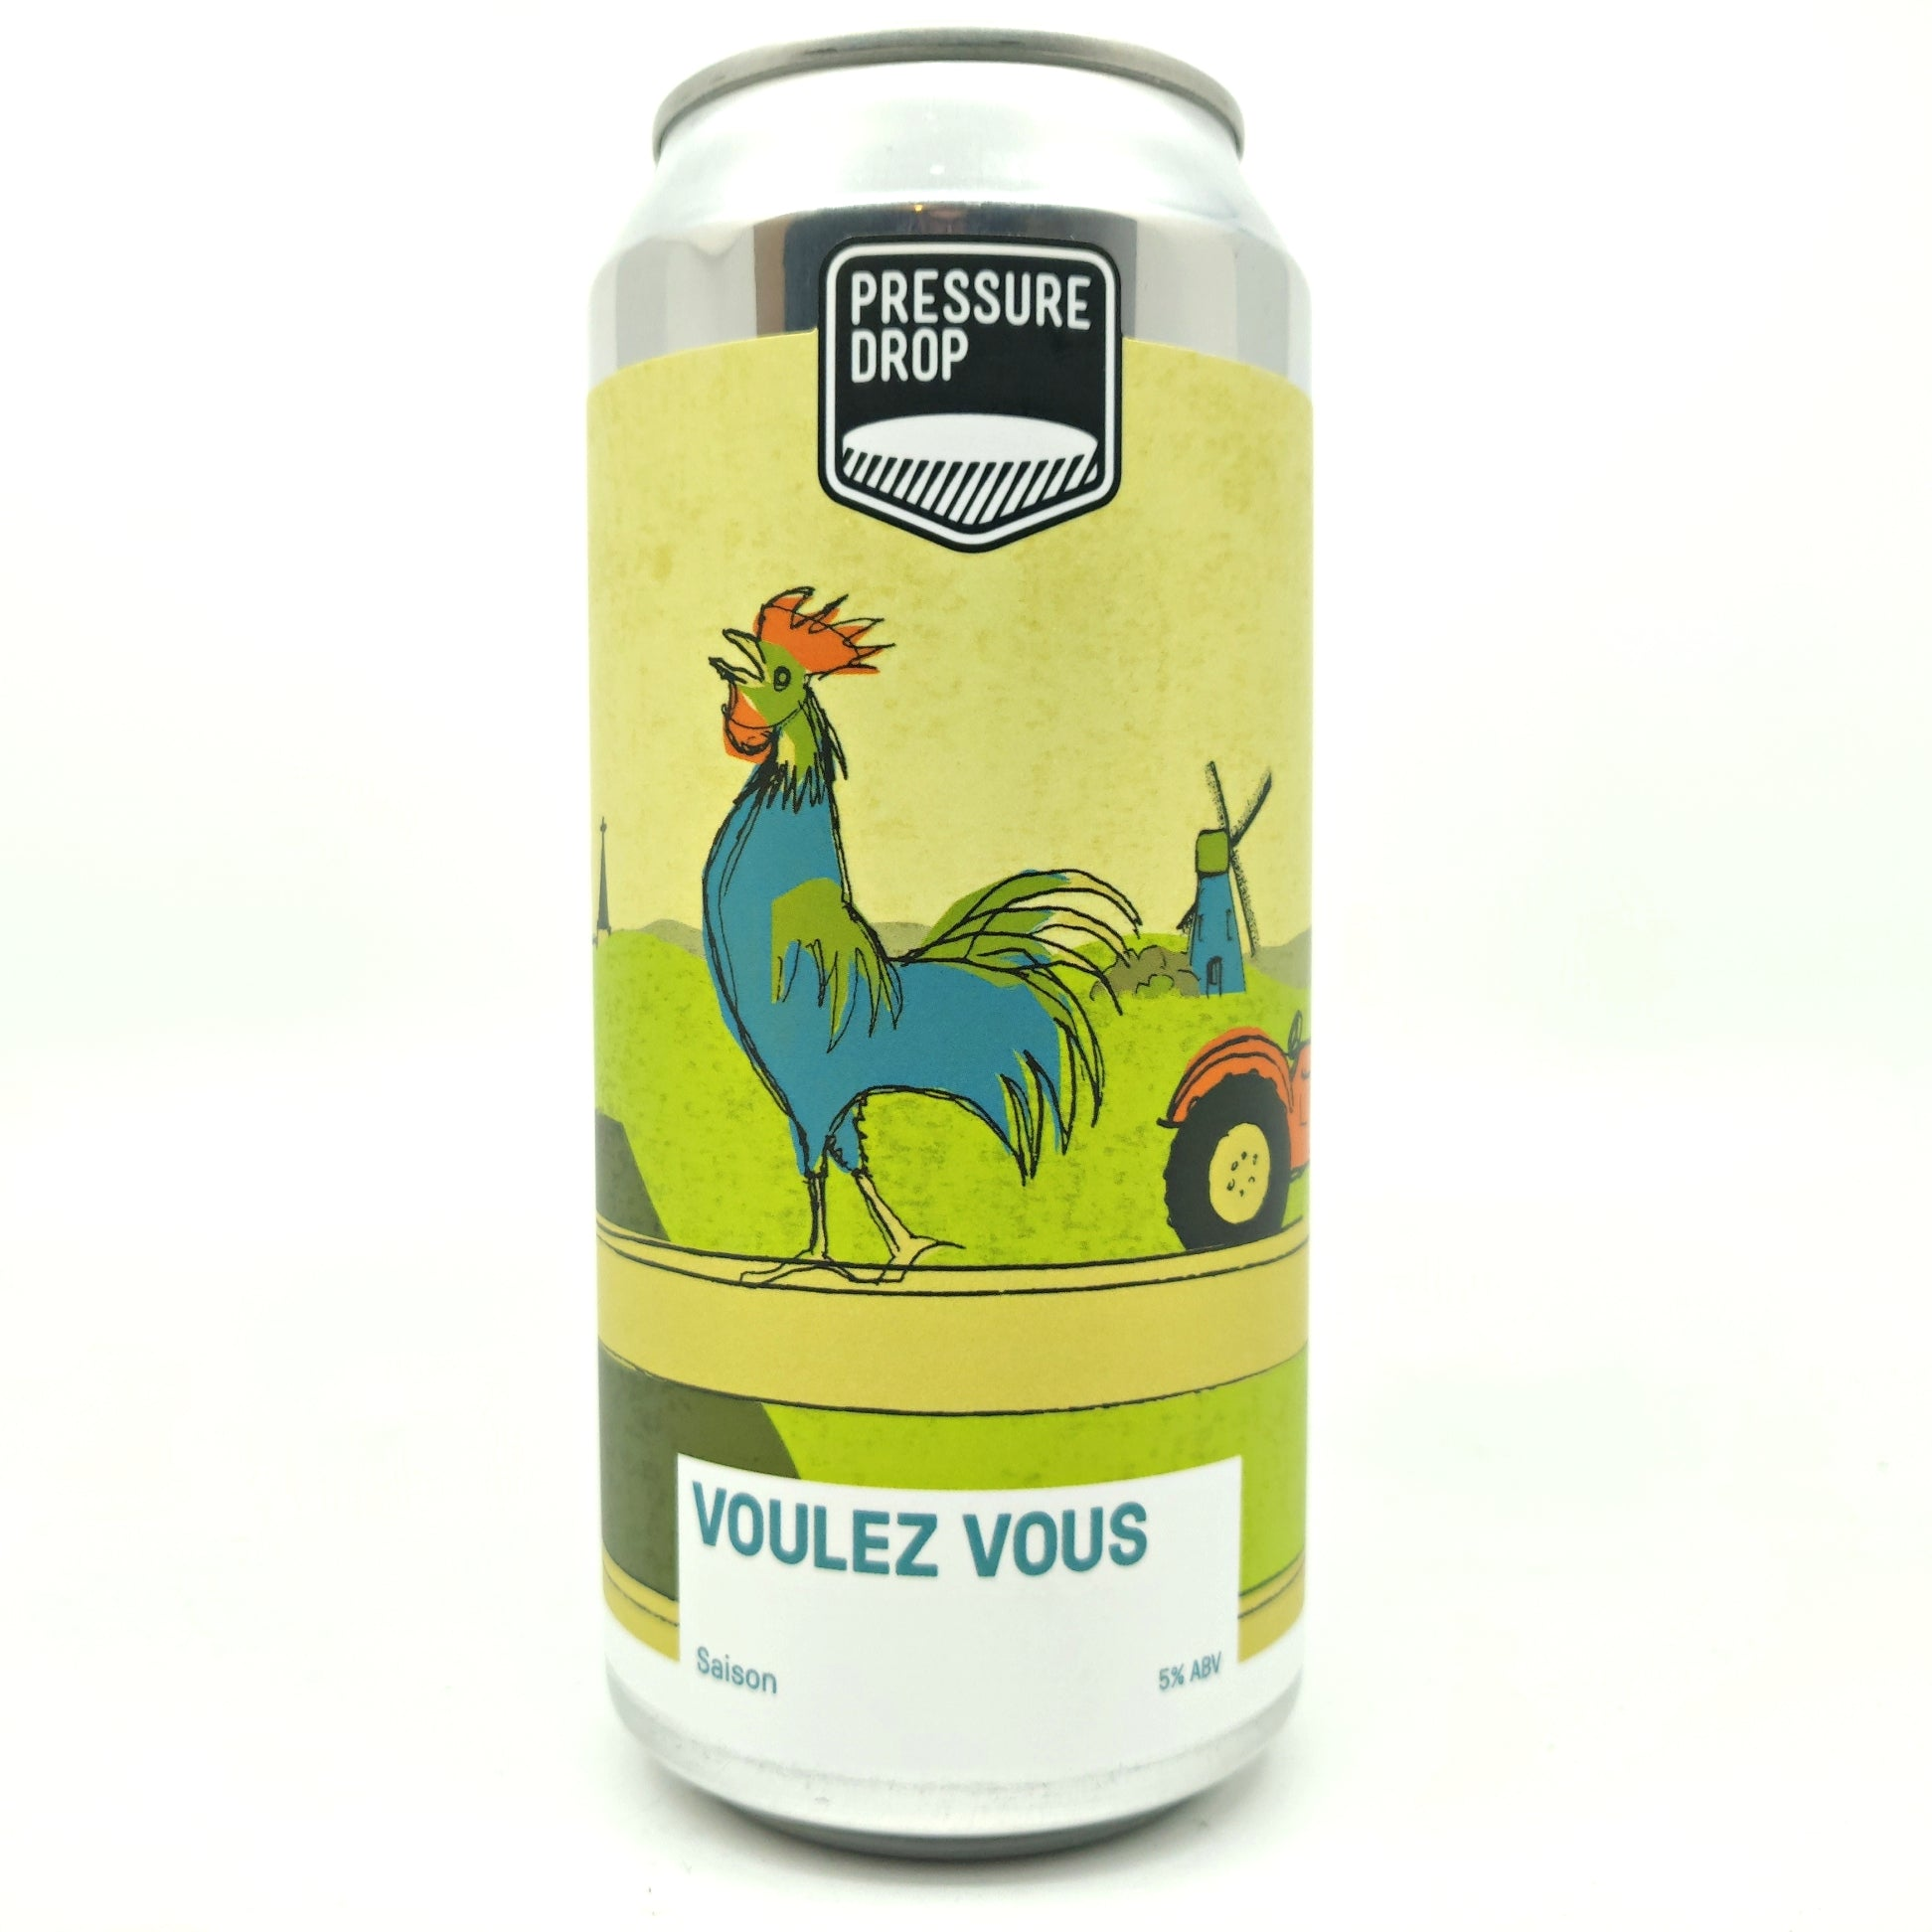 Pressure Drop Voulez Vous Saison 5.2% (440ml can)-Hop Burns & Black